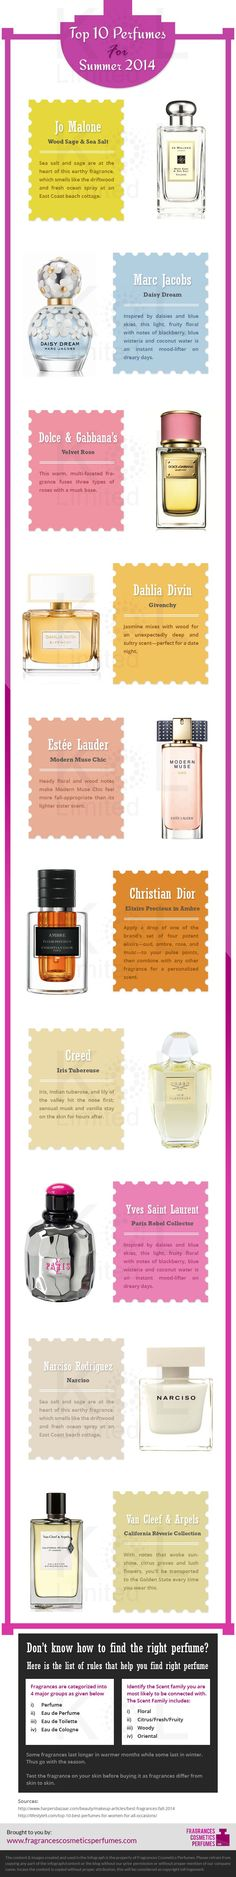 Top 10 Perfumes for Summer 2014 #infographic #Perfumes #Summer Fashion